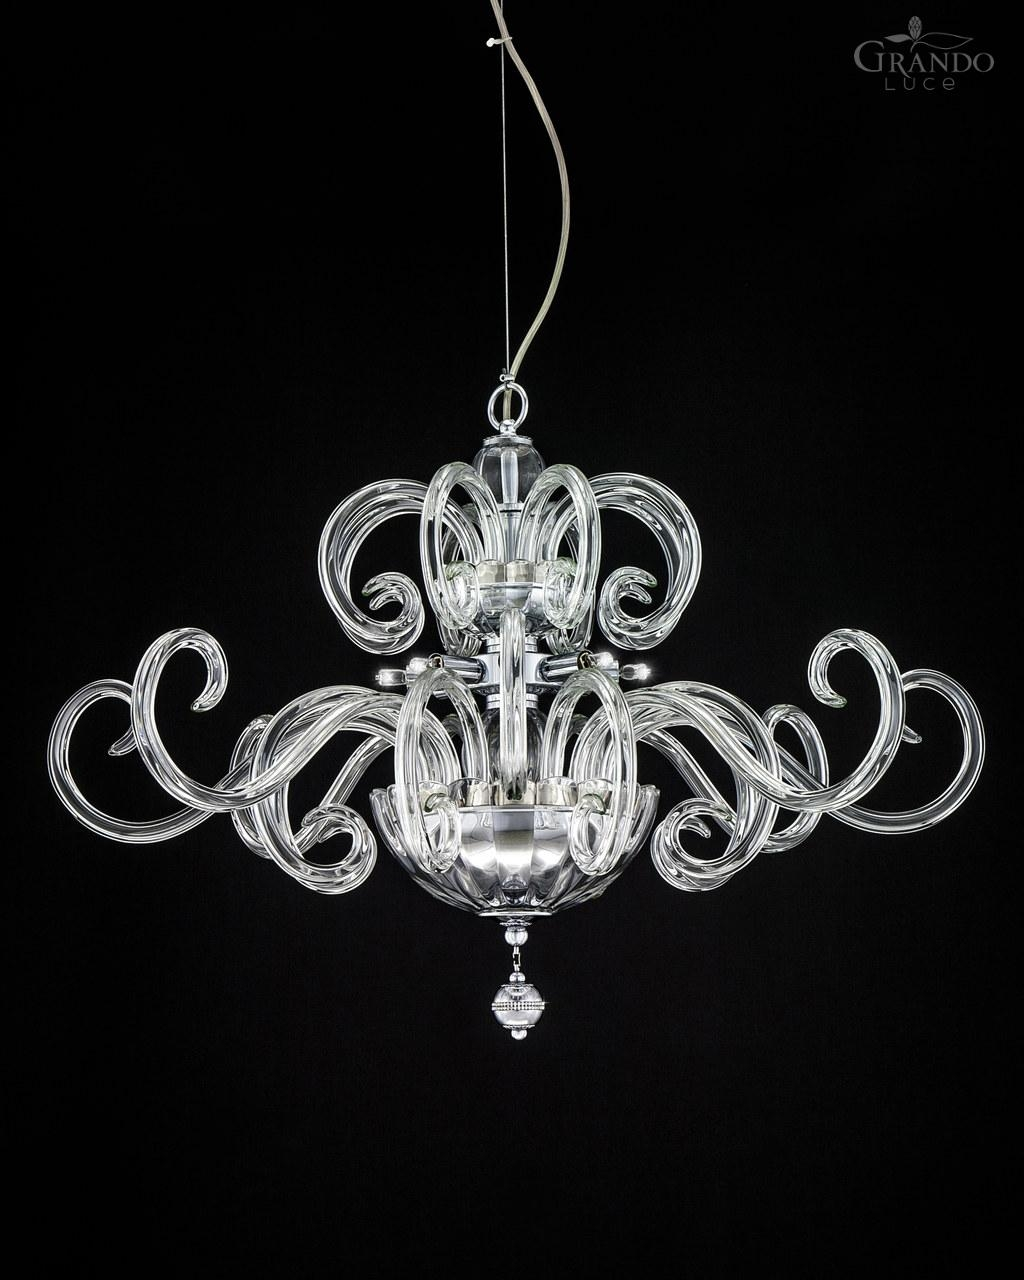 119sm Chrome Modern Crystal Chandelier With Swarovski Elements Inside Chrome And Crystal Chandelier (#1 of 12)